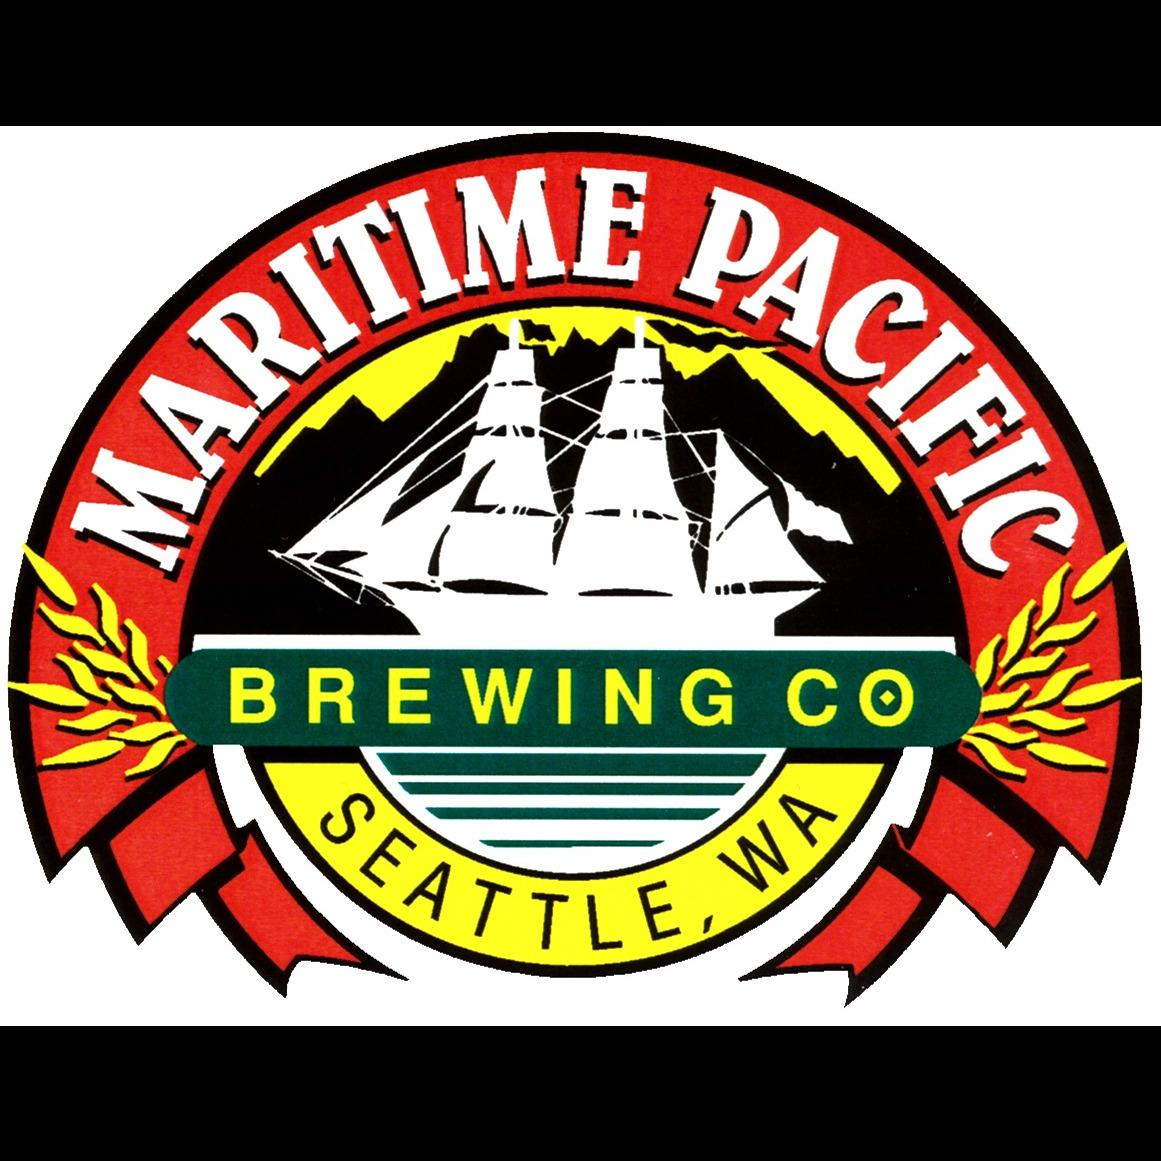 Maritime Pacific Brewing Company